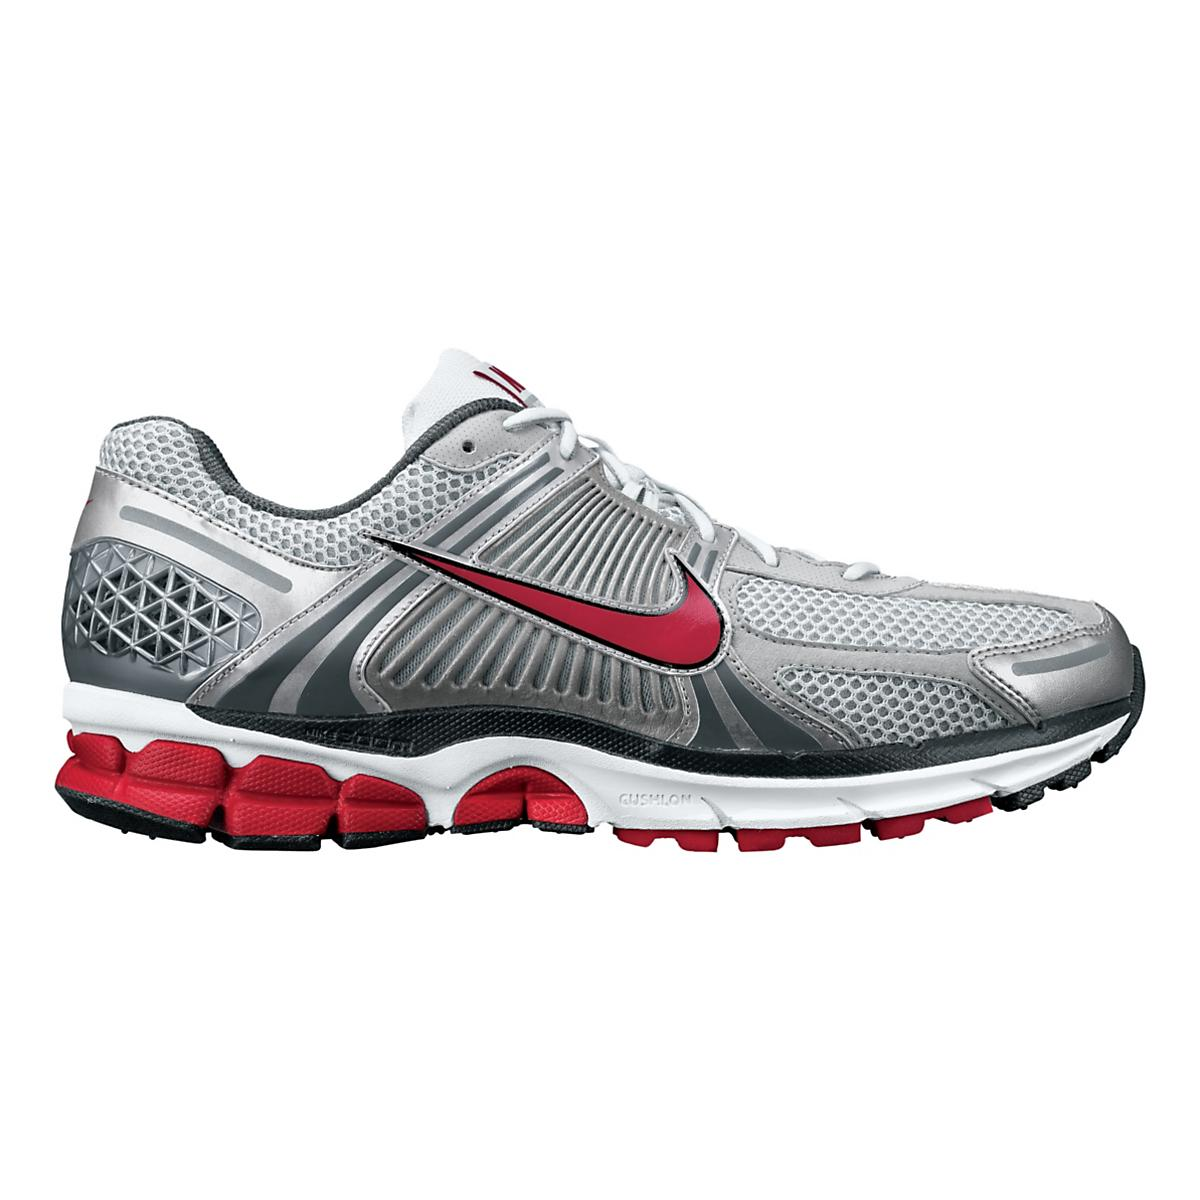 0851ab3fd403 Mens Nike Zoom Vomero+ 5 Running Shoe at Road Runner Sports